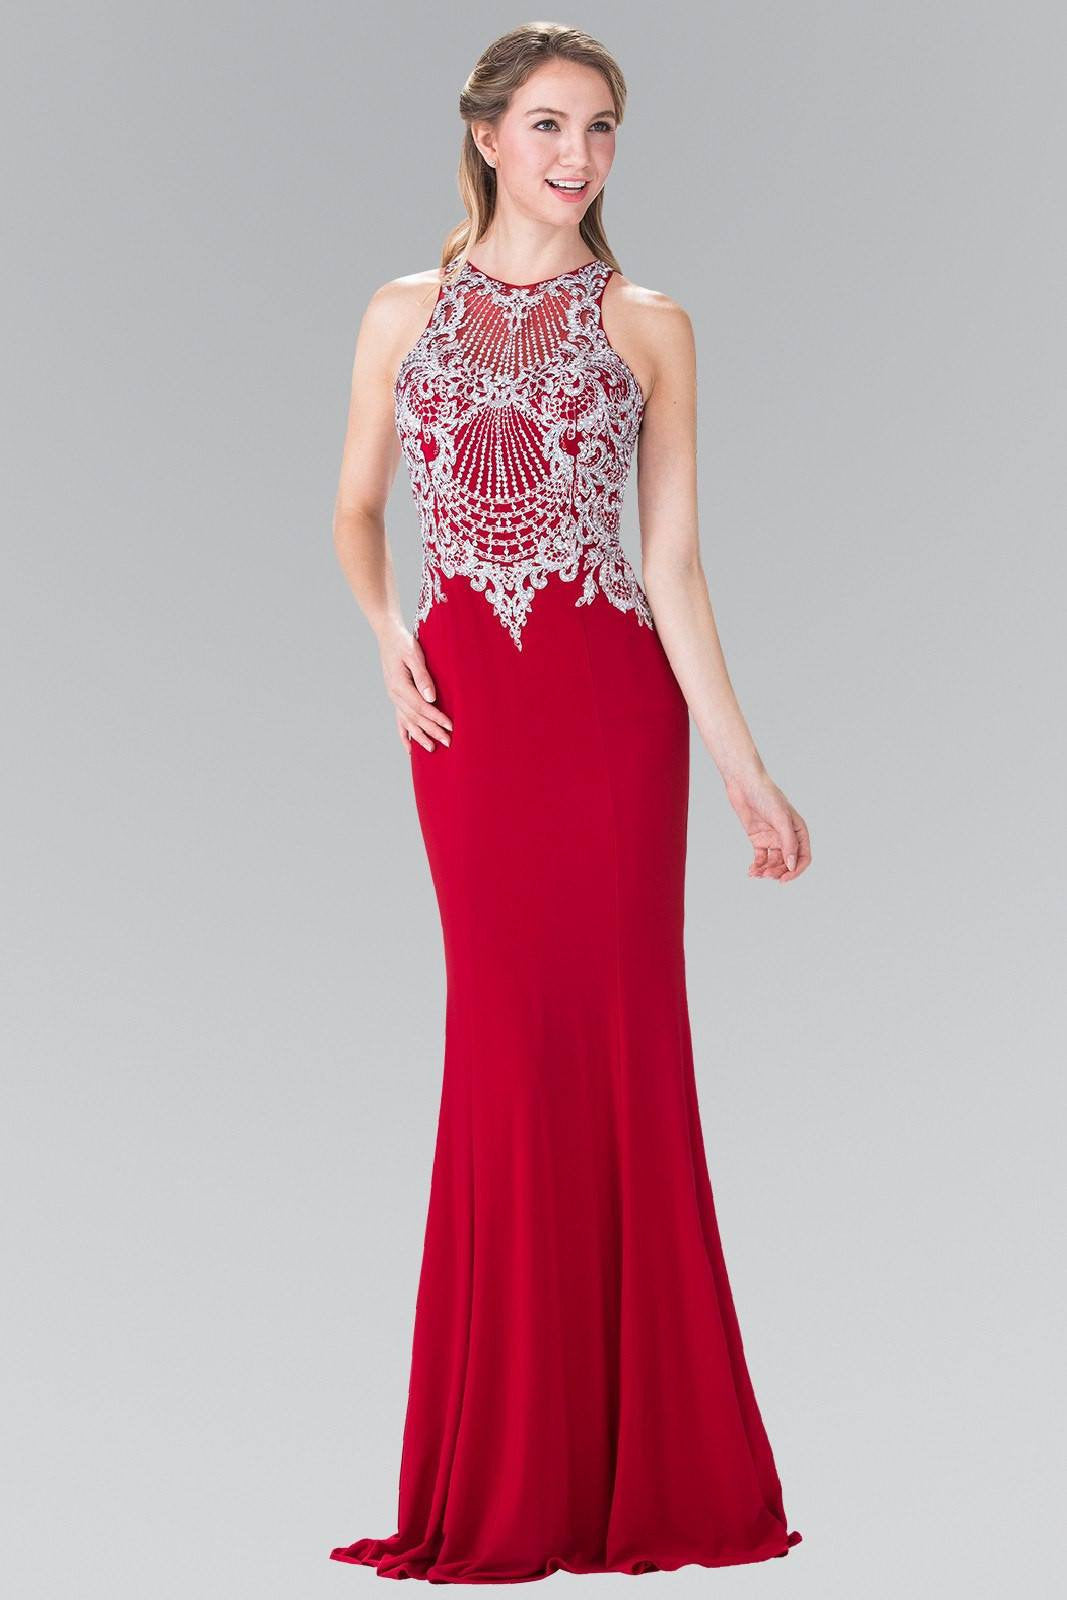 Sexy Prom Dresses- Trendy Fully Beaded Bodice Prom D